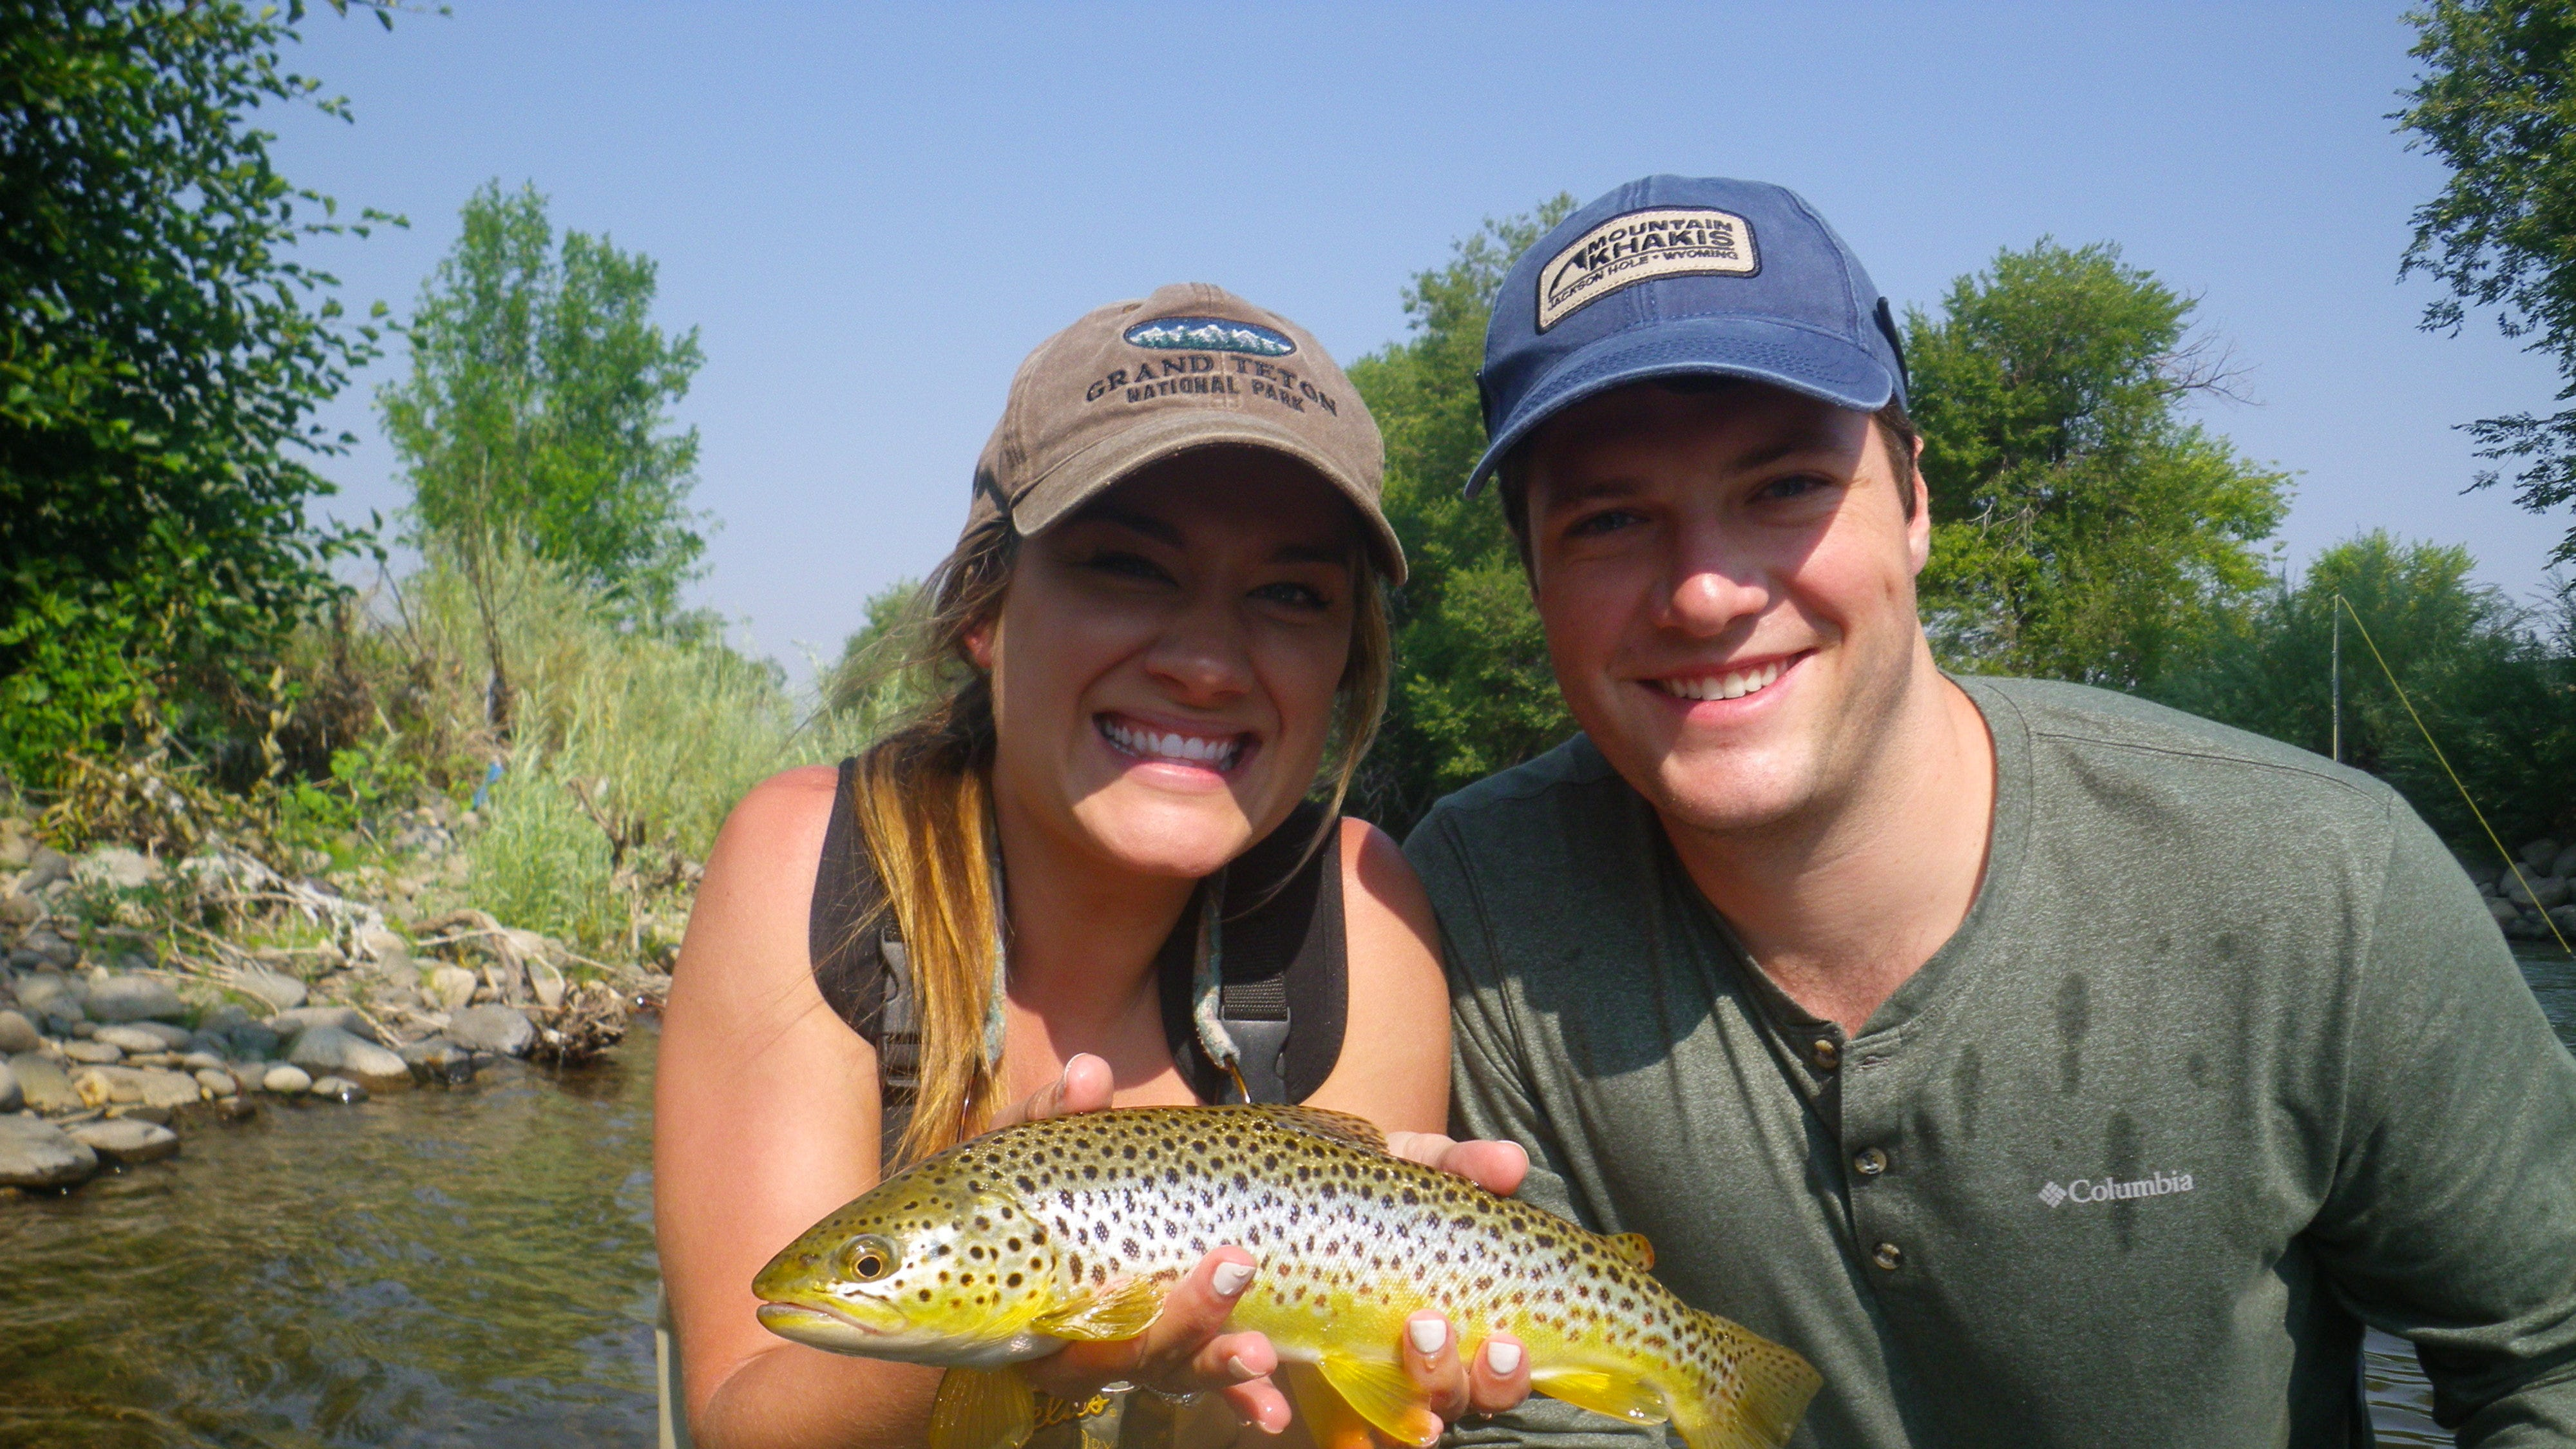 Fishing is improving at area lakes and streams.